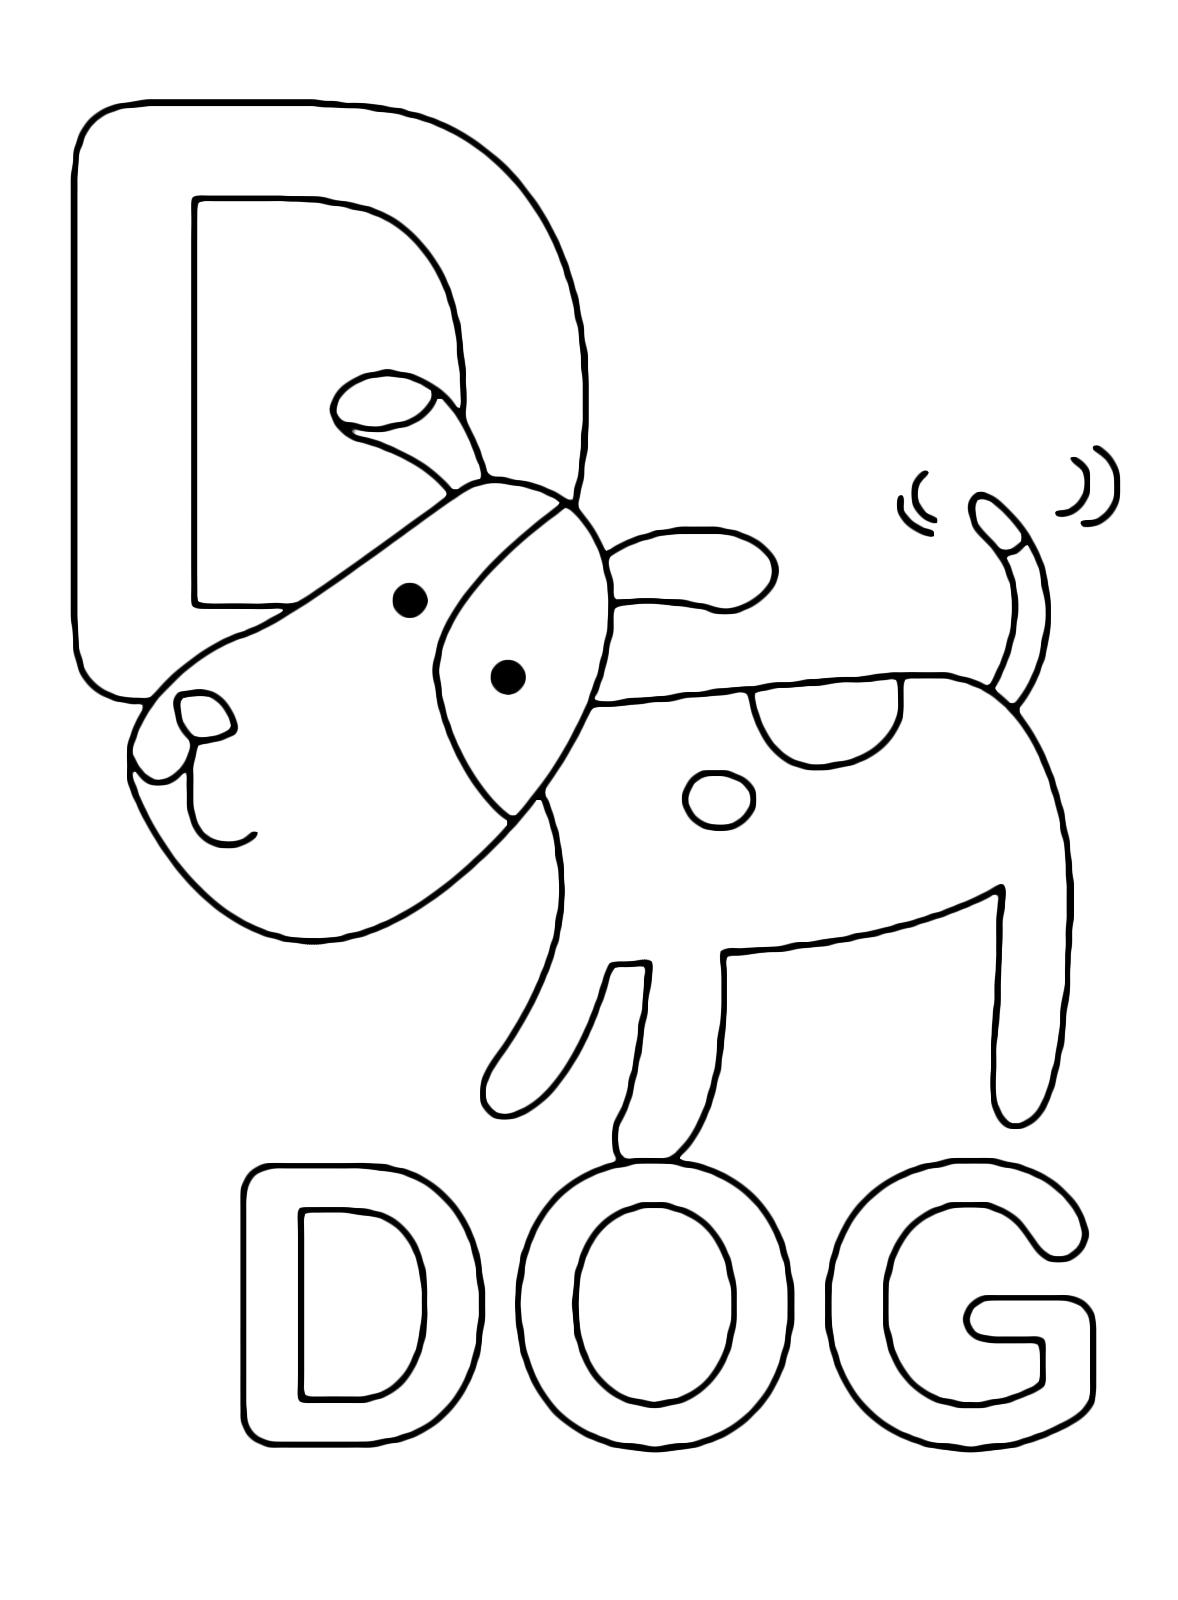 coloring pages coloring book - lettera d in stampatello di dog cane in inglese